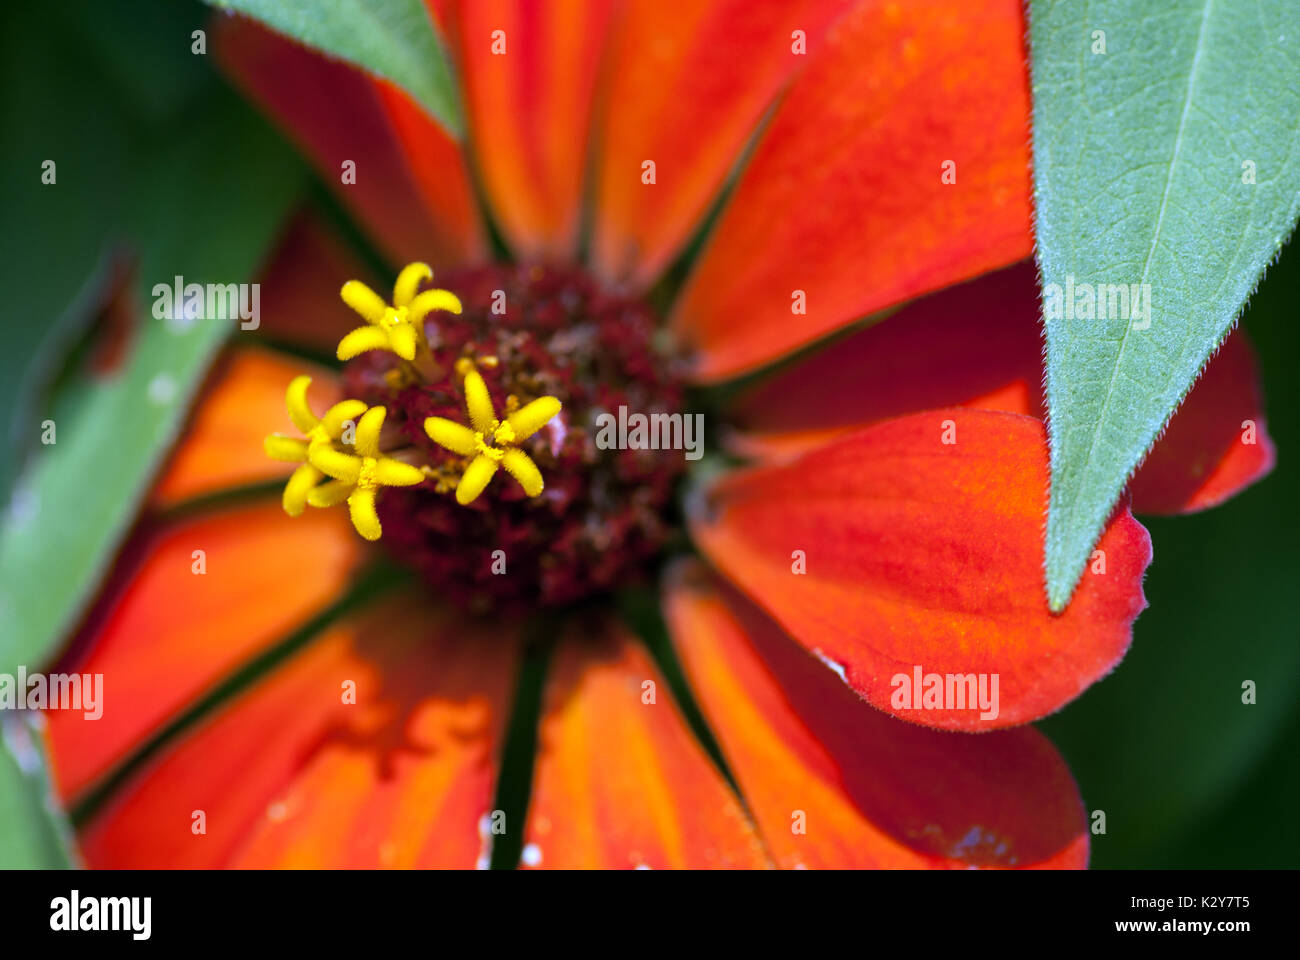 Tiny Yellow Flowers Growing Out Of A Wide Red Flower Stock Photo